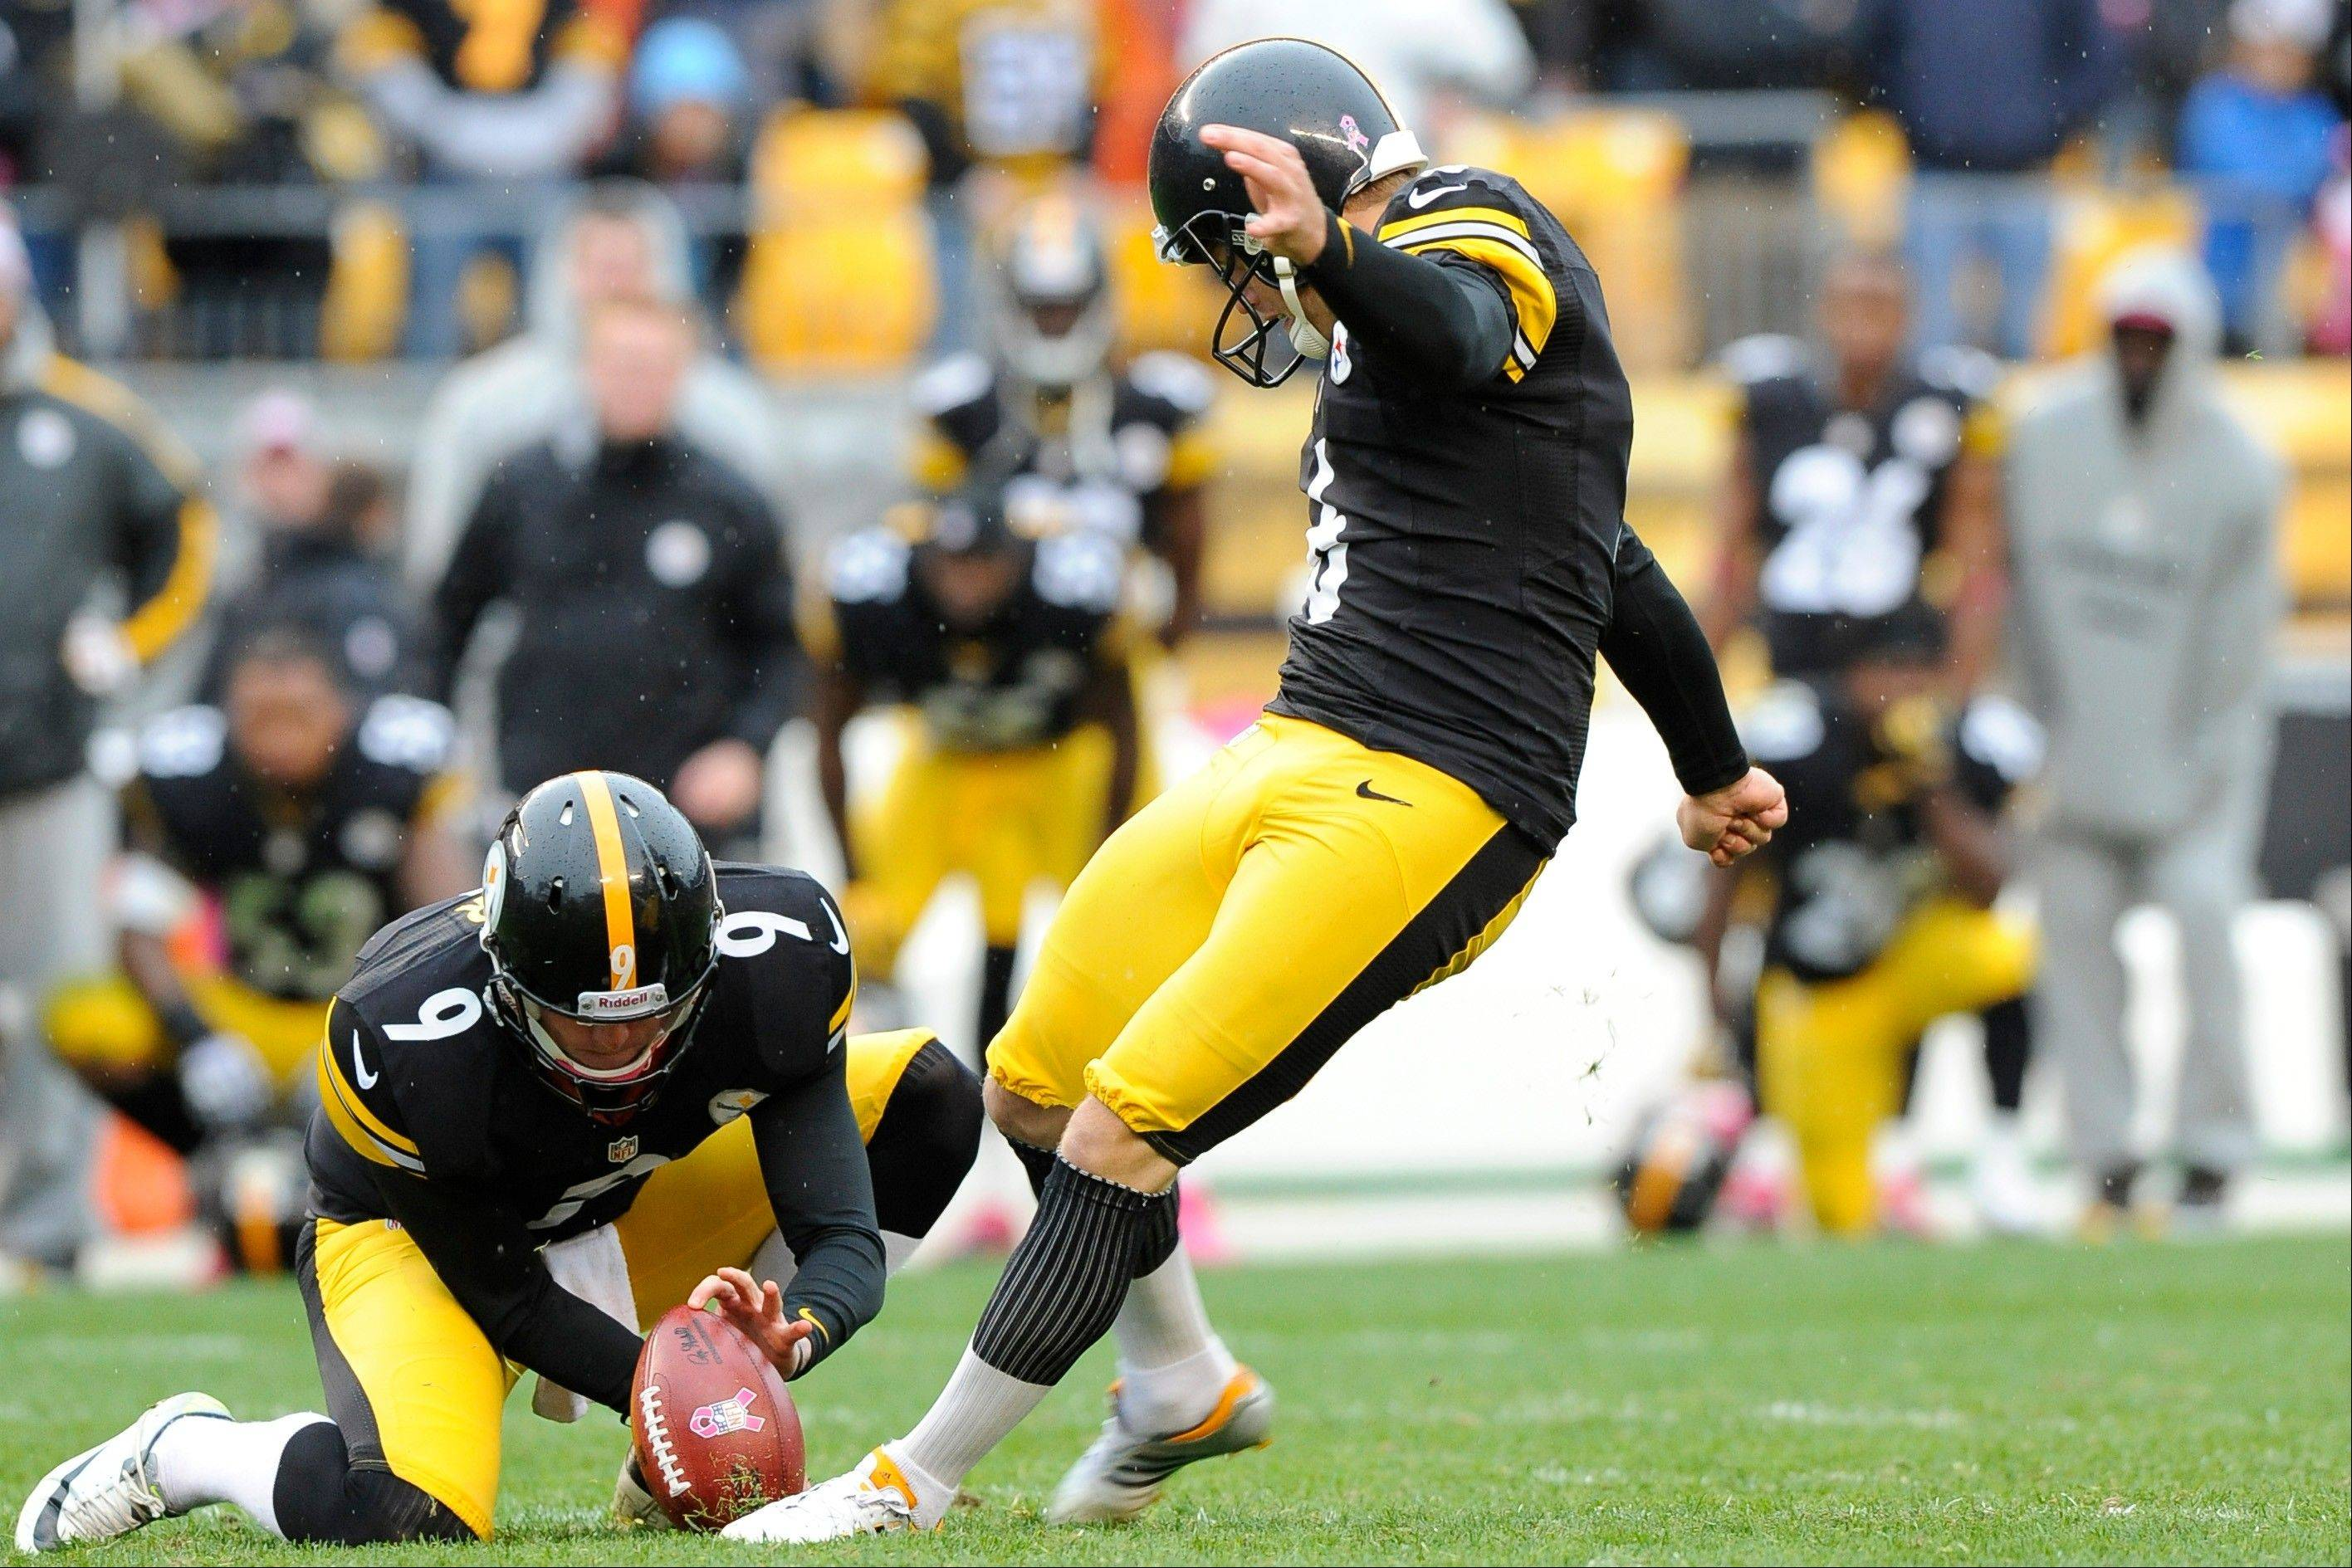 Steelers kicker Shaun Suisham boots 34-yard field goal to beat Philadelphia as time runs out Sunday in Pittsburgh.